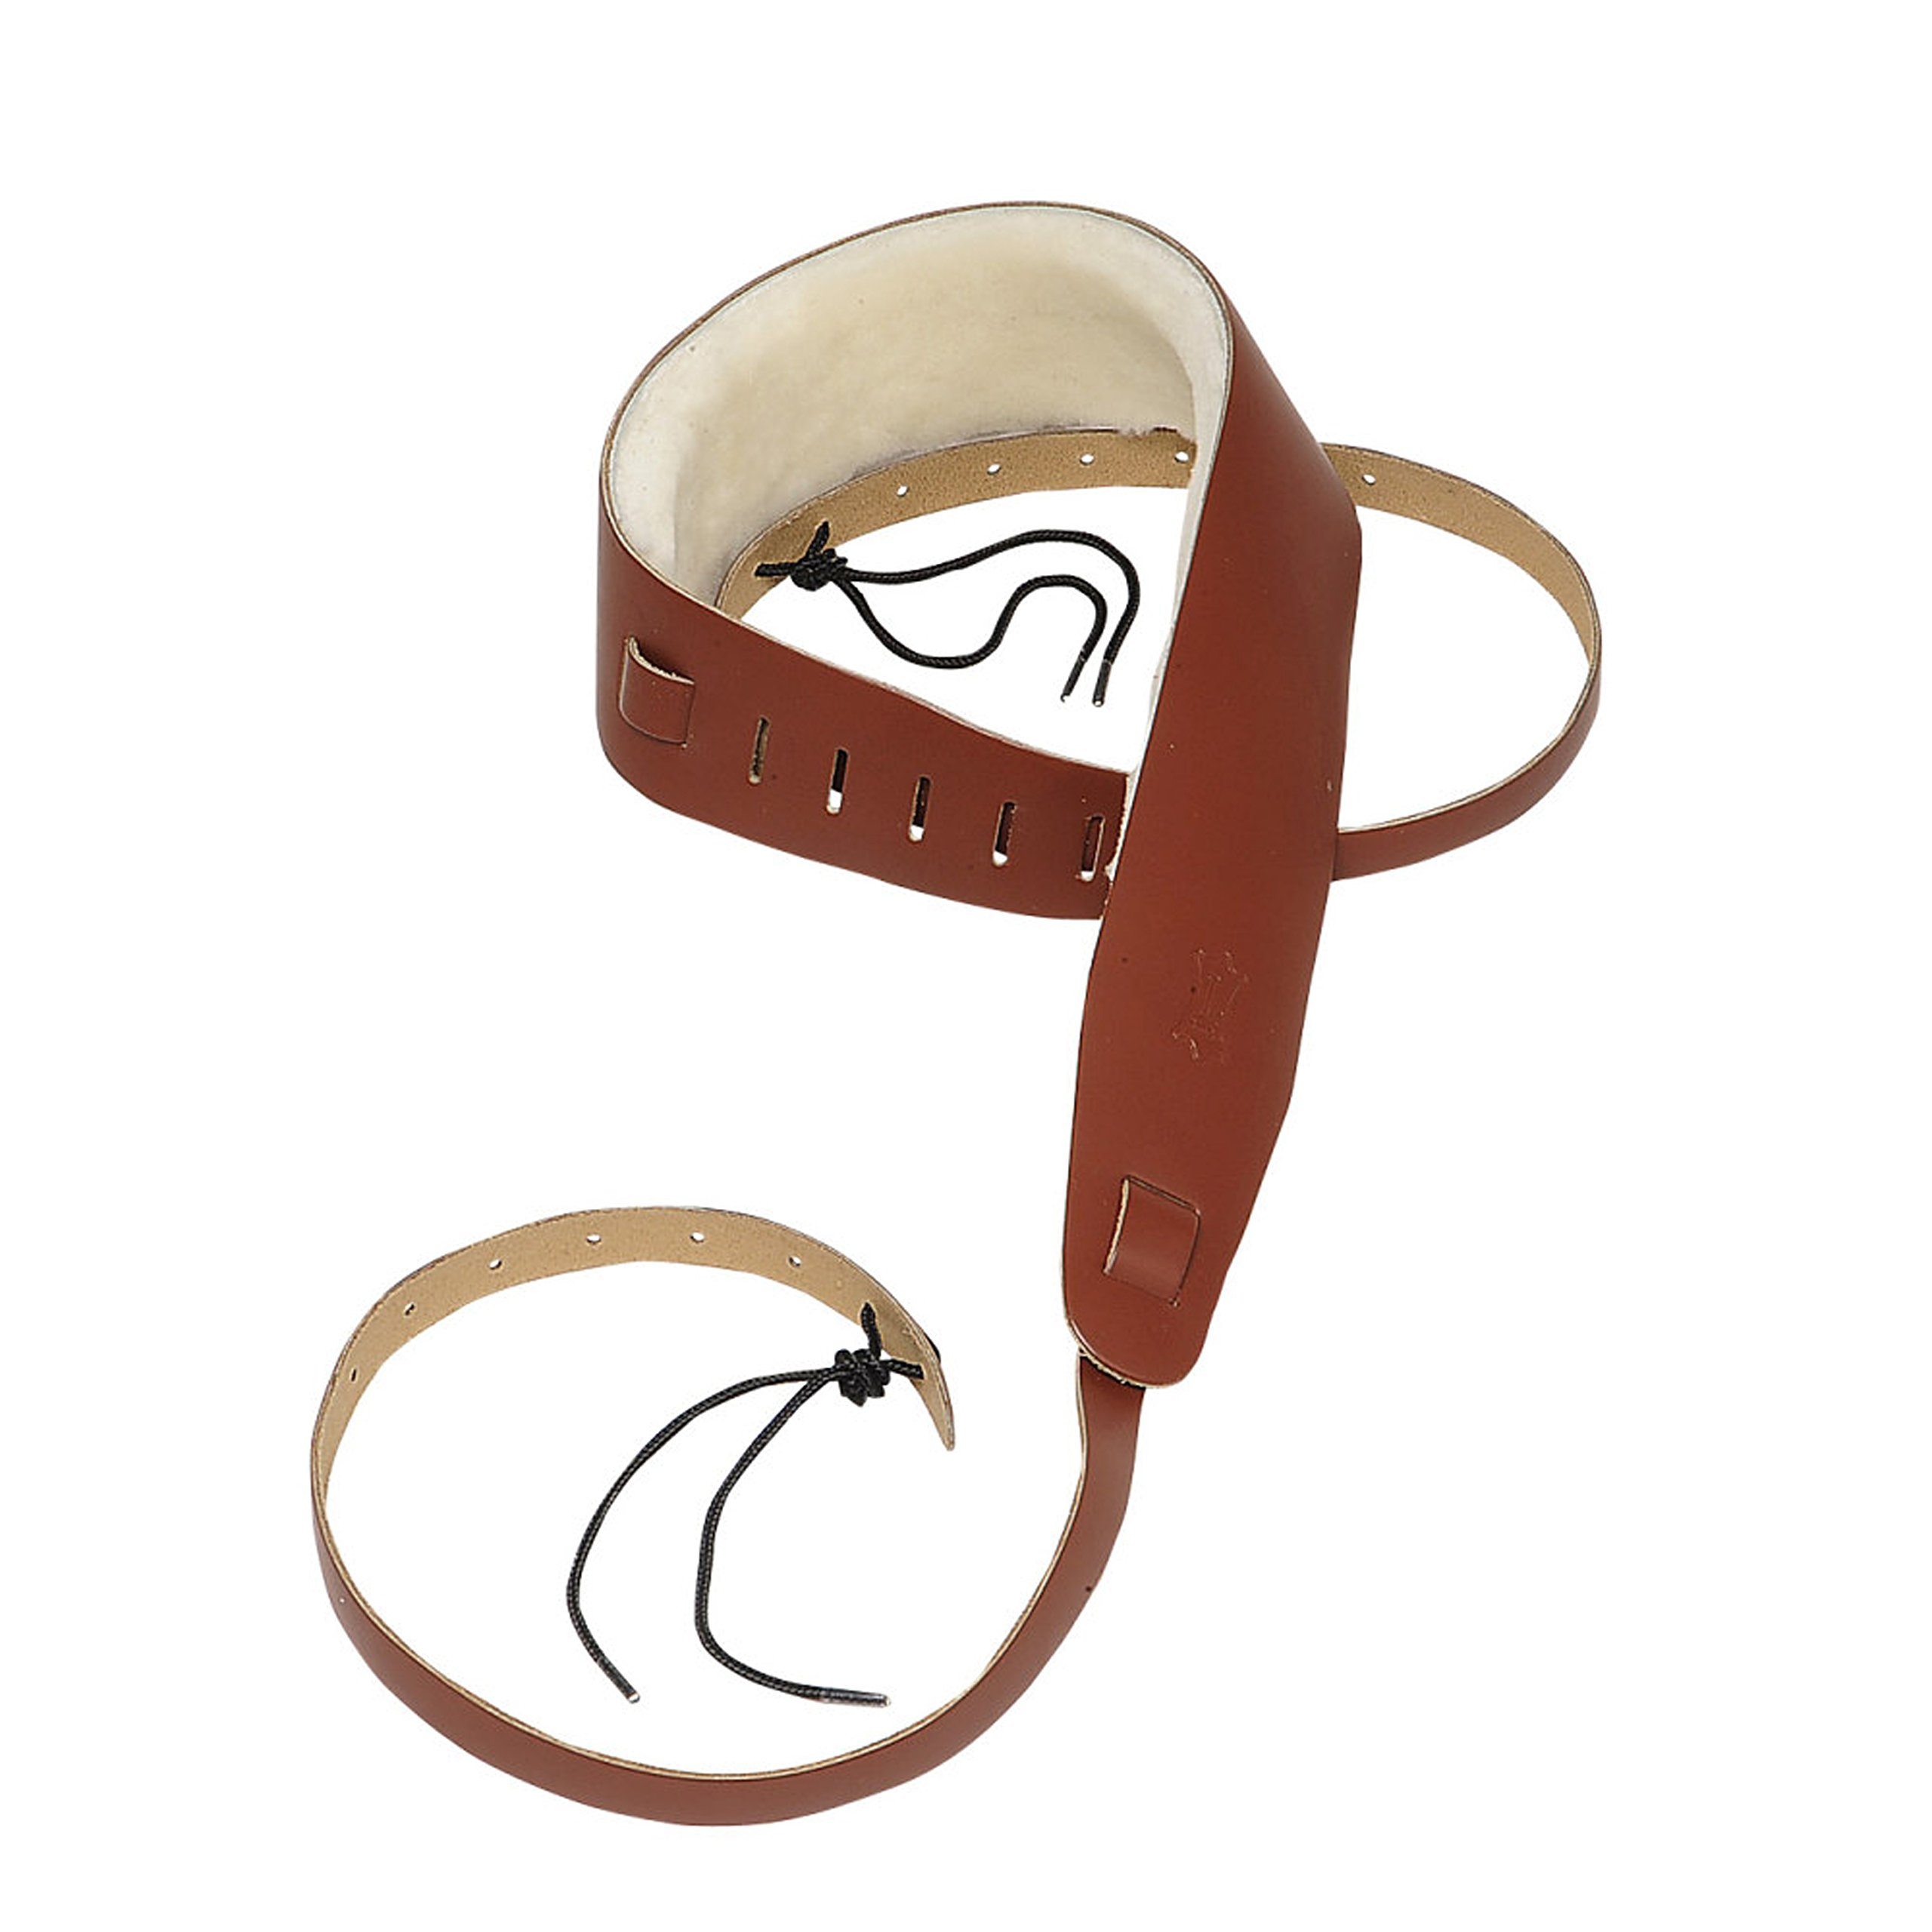 Levy's Leathers PM14-WAL Leather Banjo Cradle Strap, Walnut